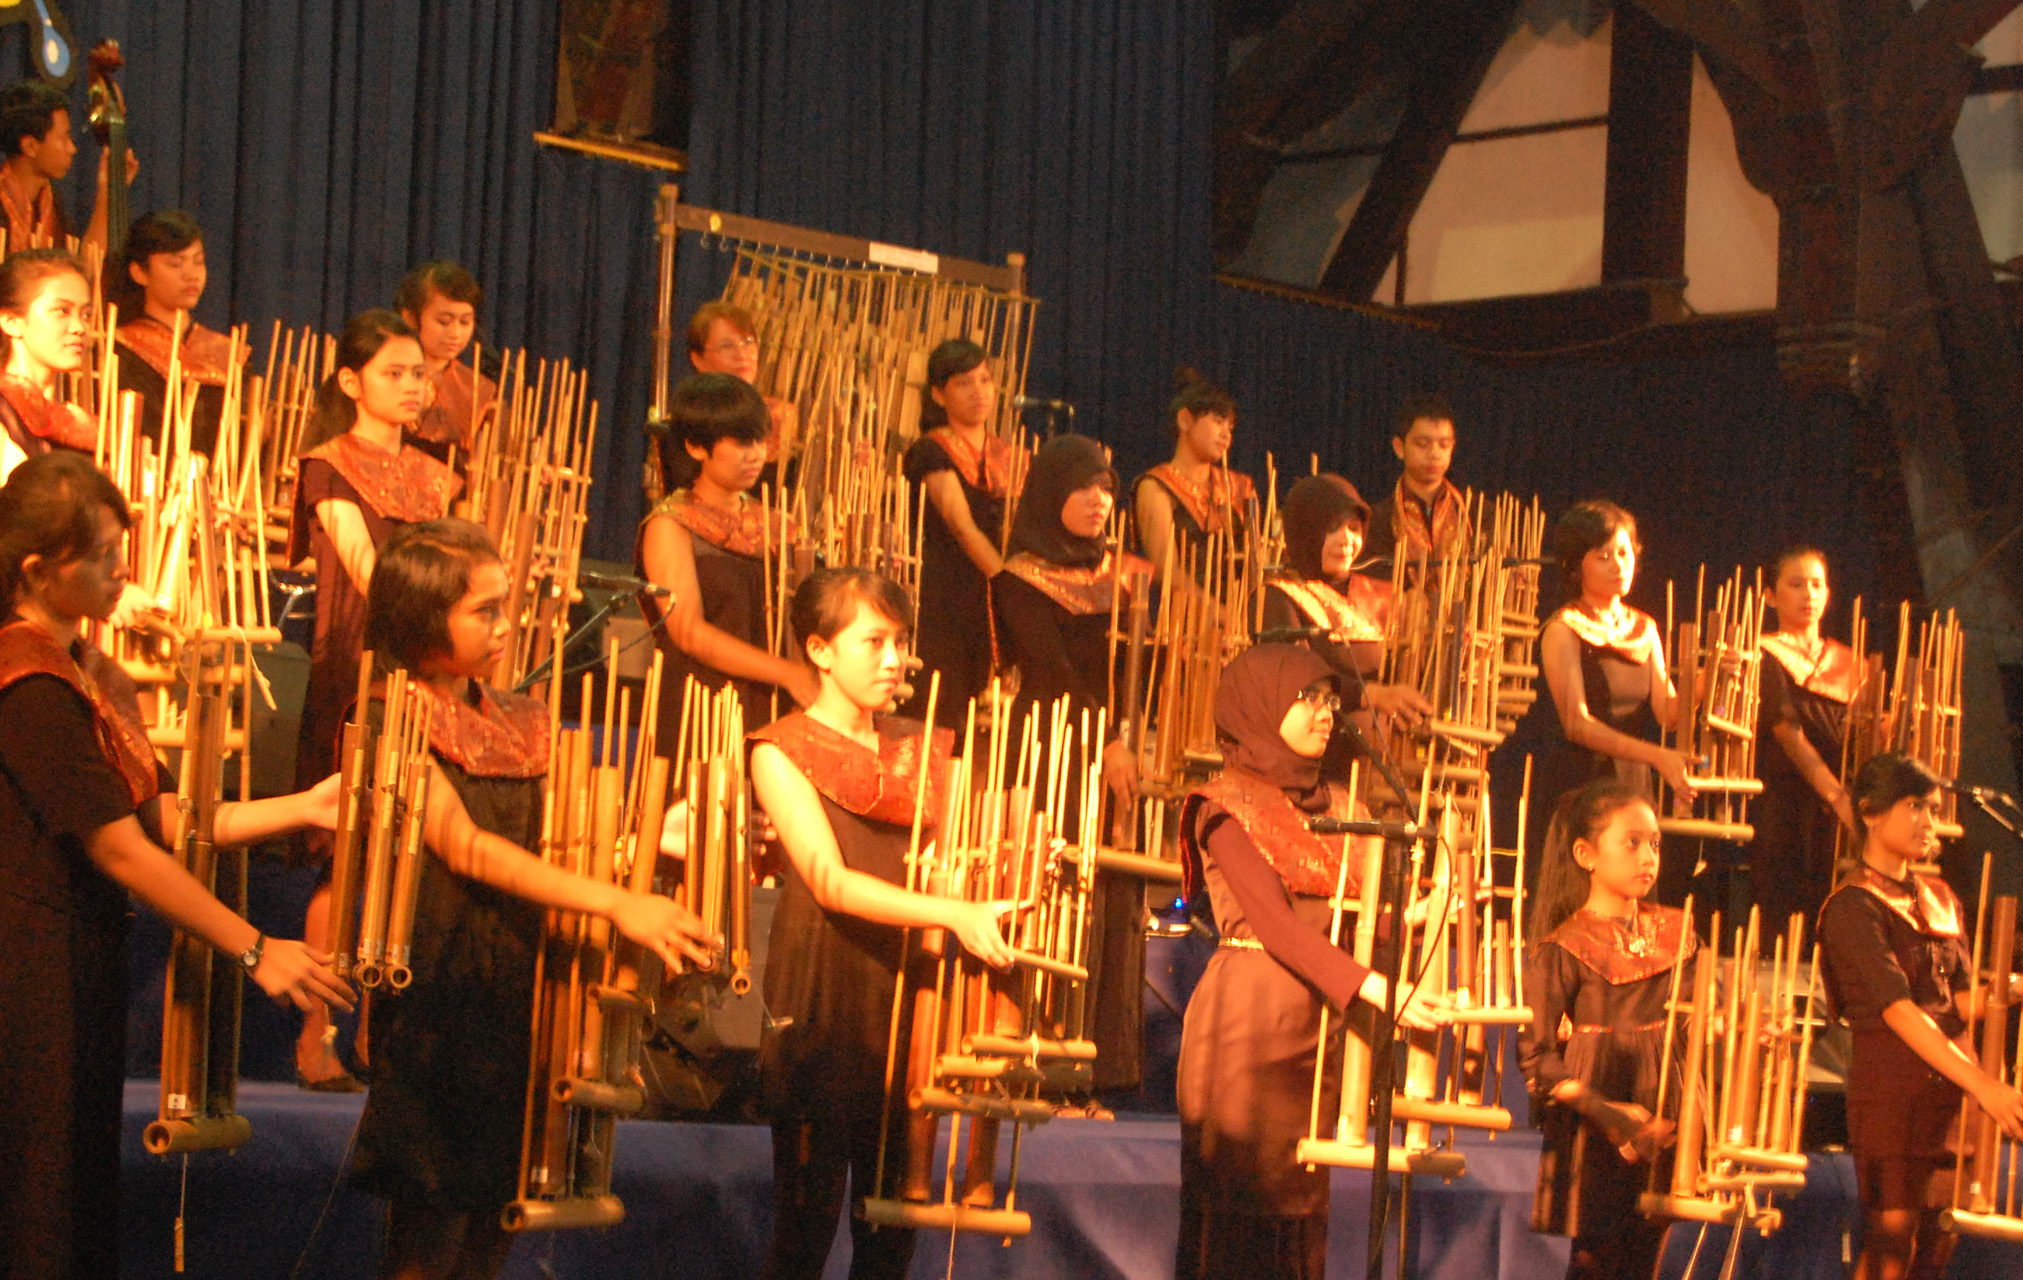 November 2011:Students playing angklungs as they compete at the Festival Paduan Angklung XIII in Bandung, indoniesia